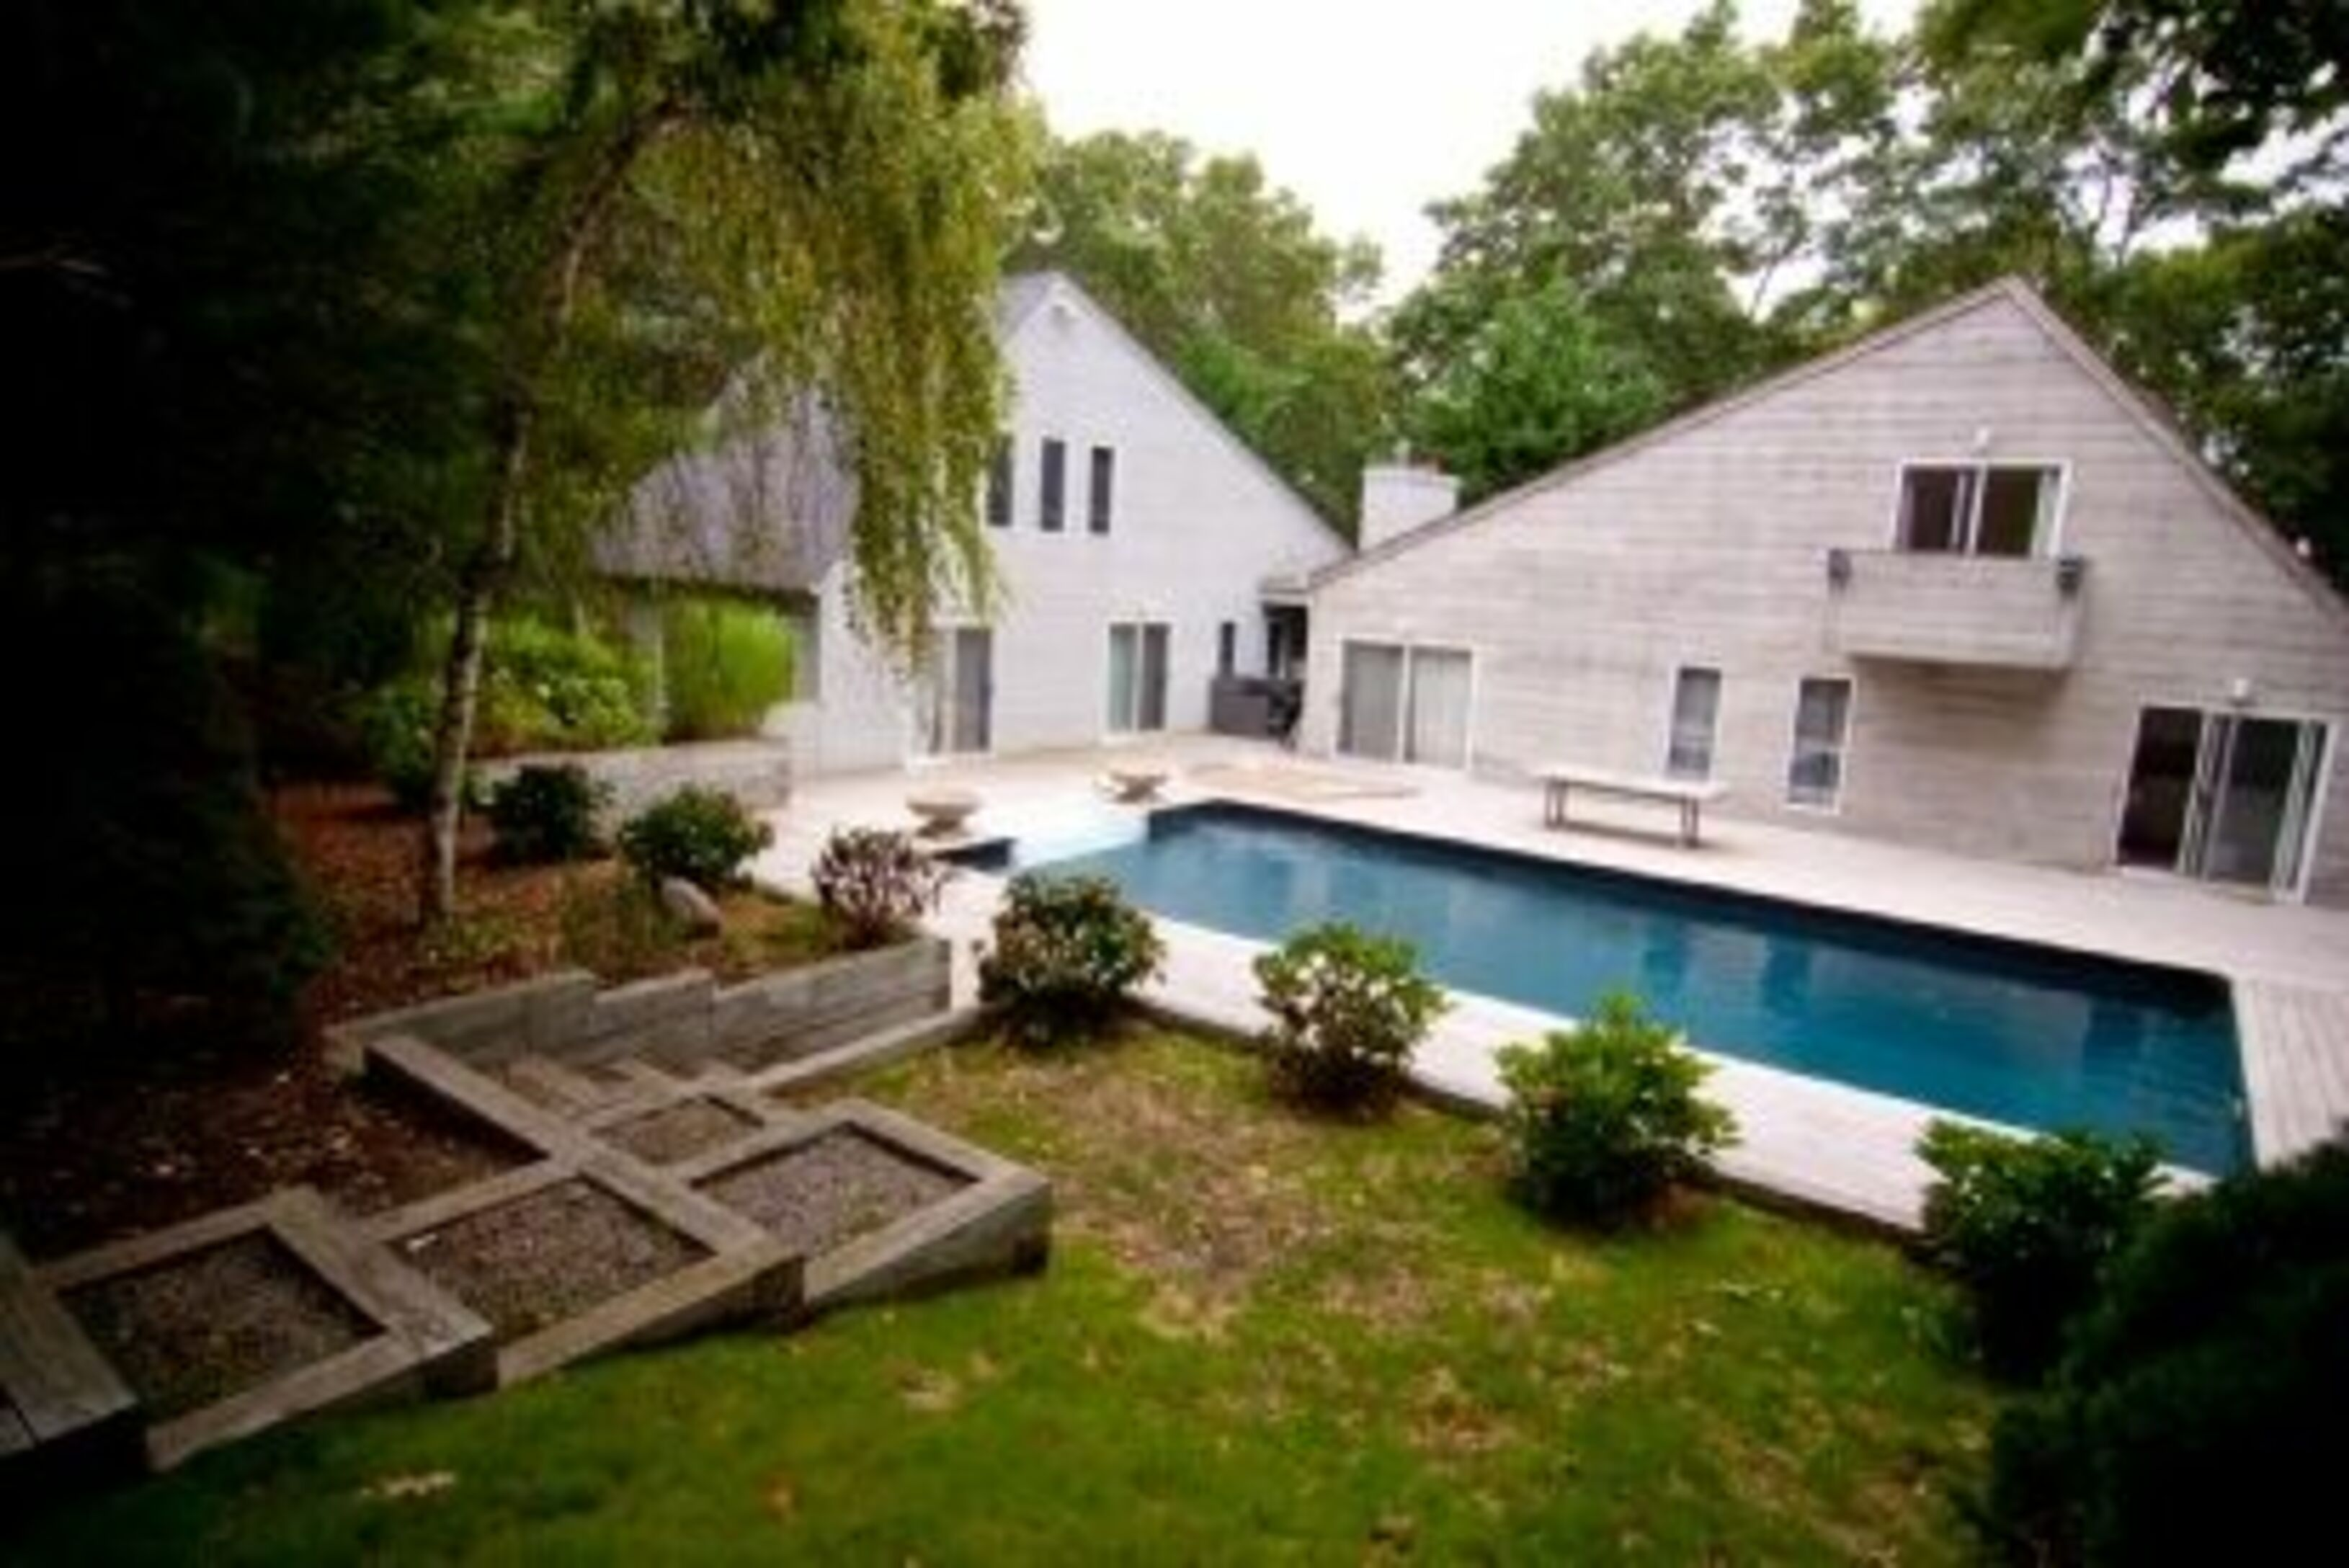 190 Old Farm Rd - Sagaponack North, New York